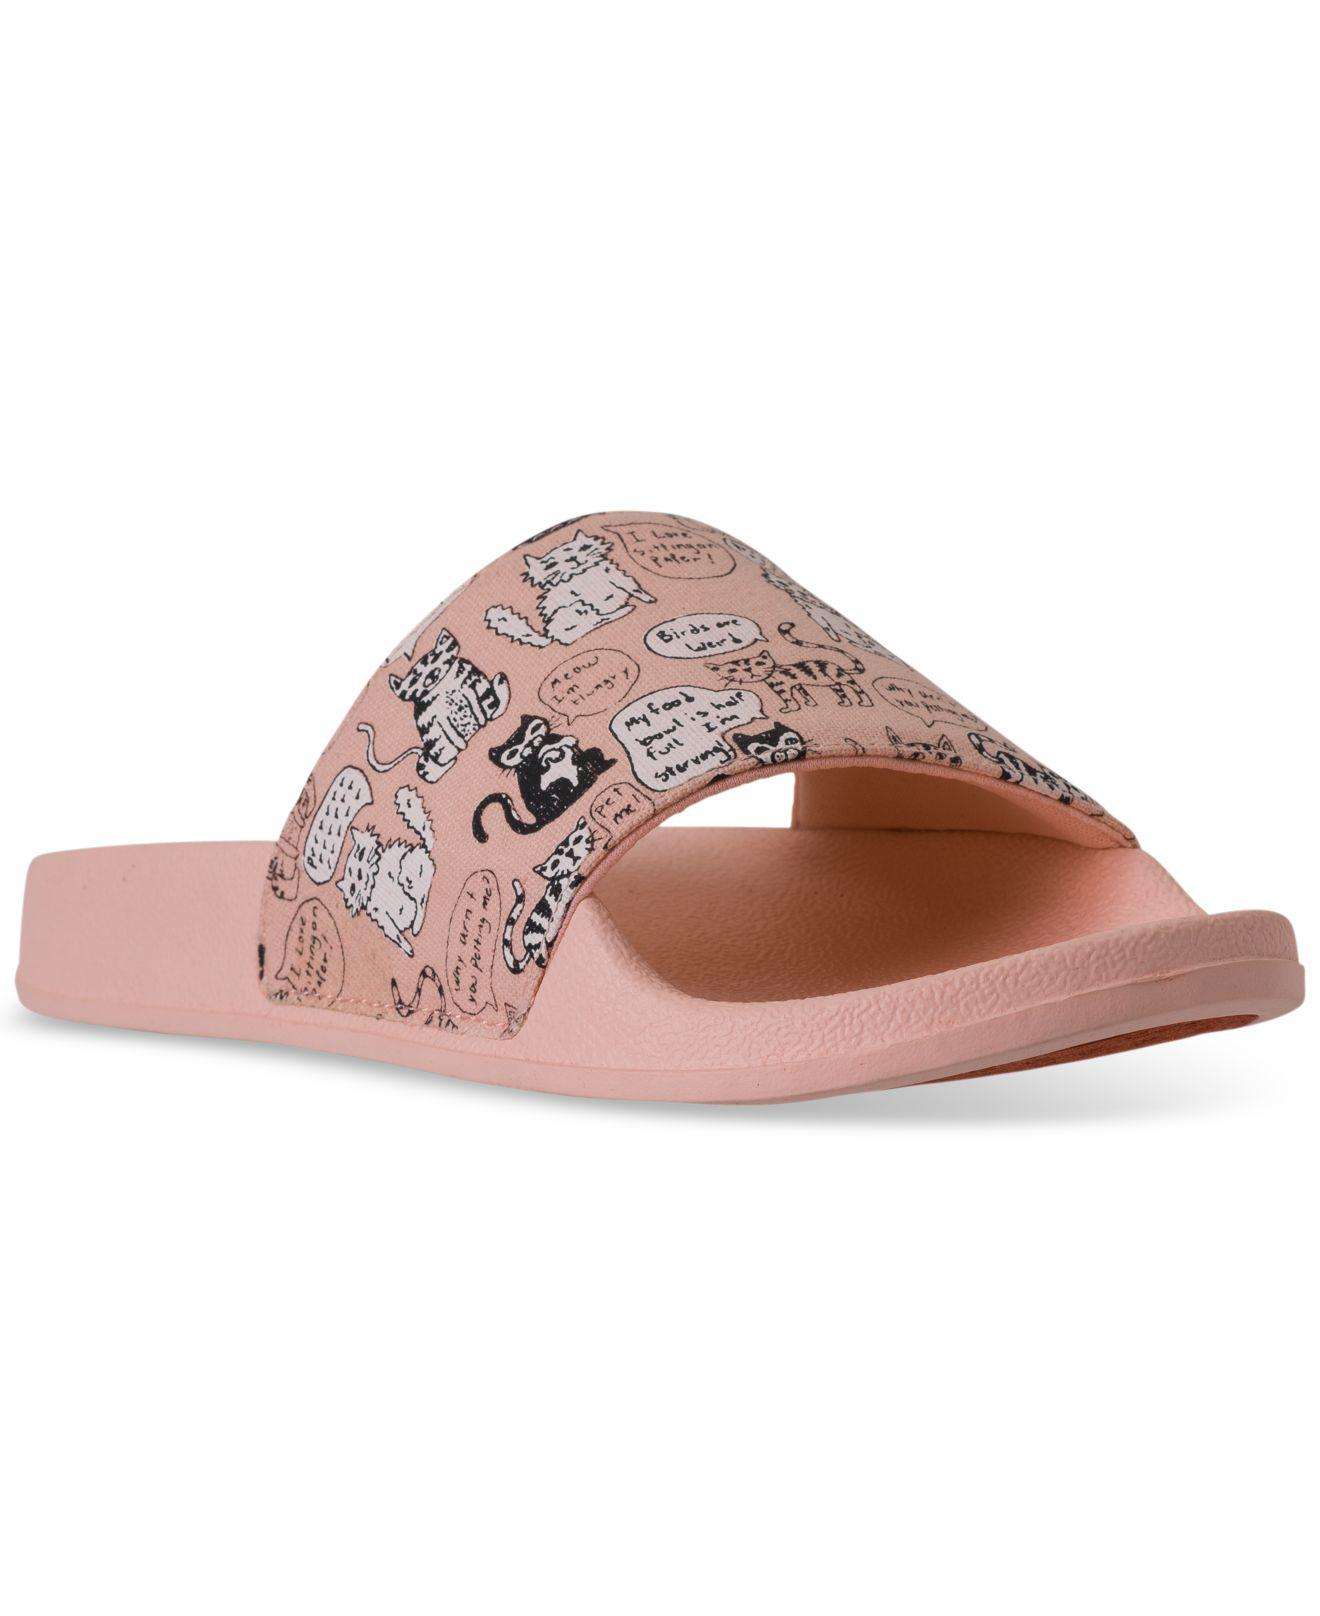 Skechers. Women s Pink Bobs Pop-ups - Cat Chat Bobs For Dogs Slide Sandals  From Finish Line 50550cb1d